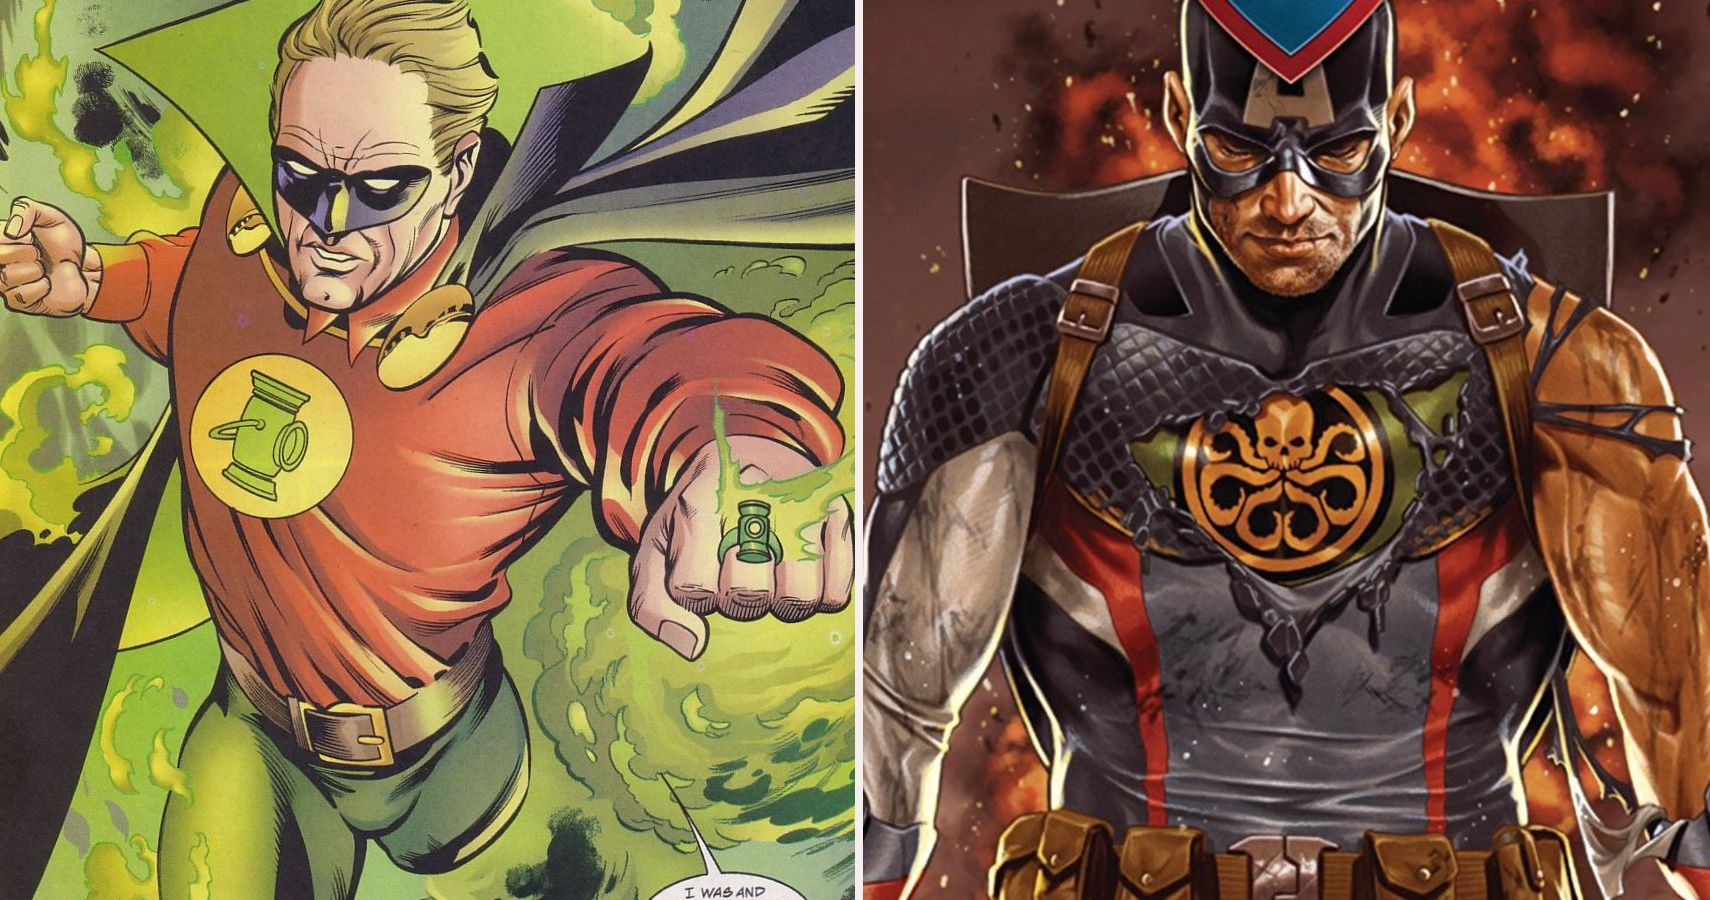 Green Lantern 5 Captain America Villains Alan Scott Could Defeat In A Fight 5 He Would Lose To